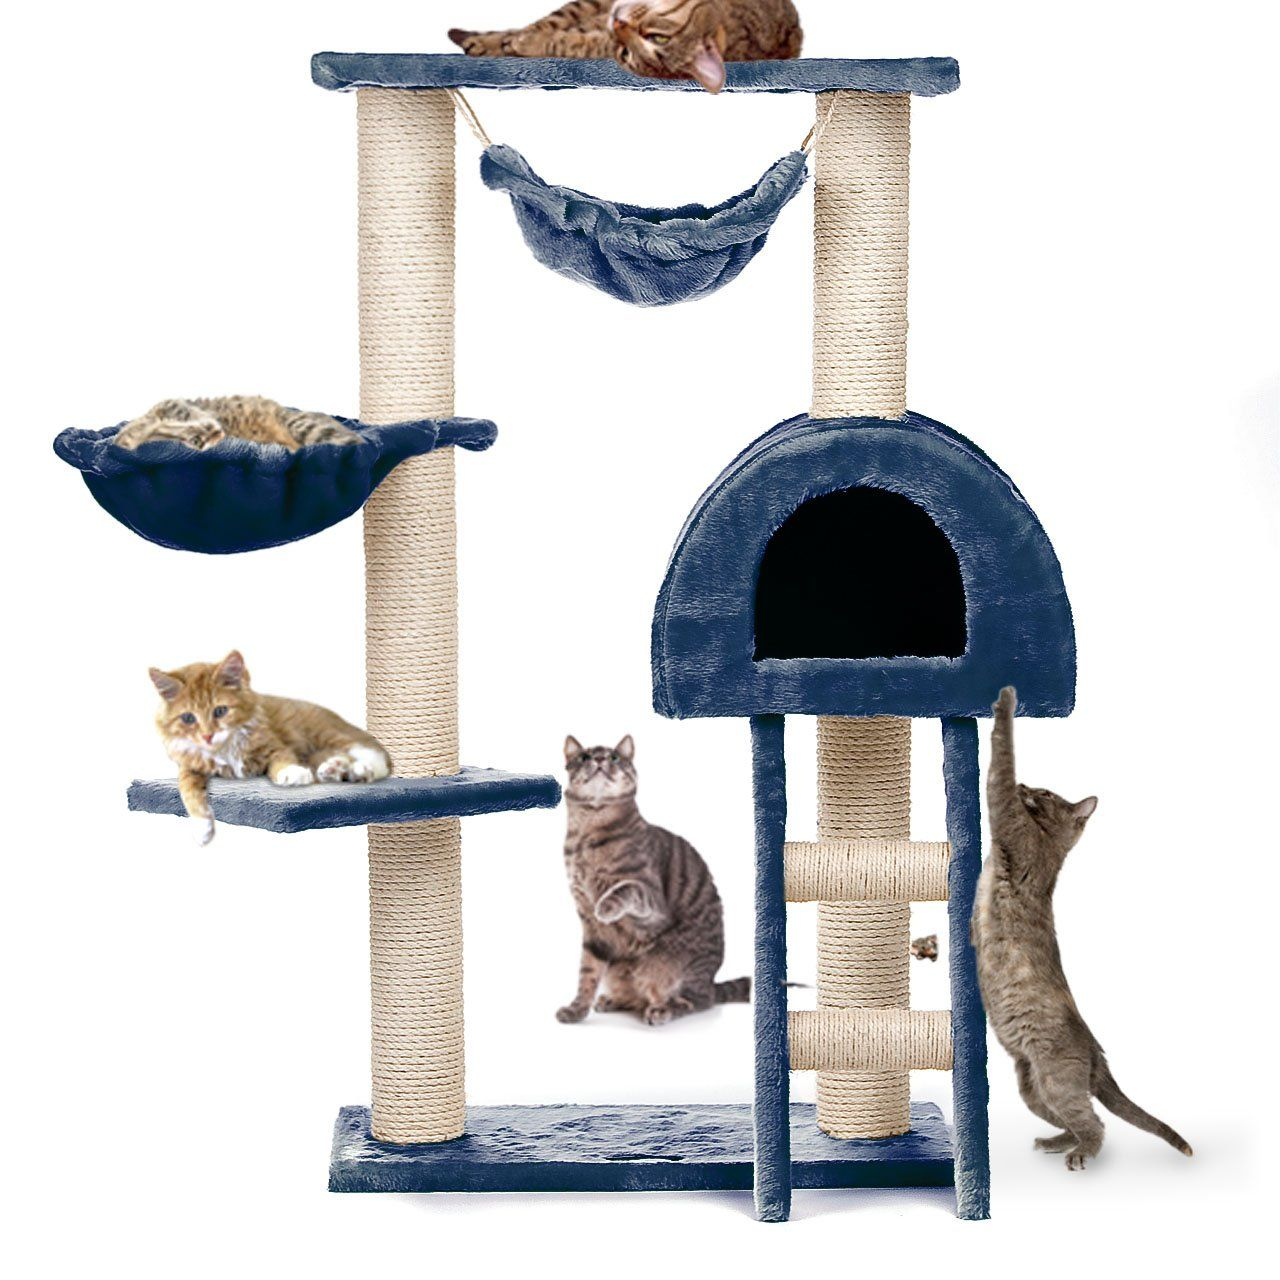 blue cat tree with hammock   uk  poles have sisal ropes for scratching  kitty blue cat tree with hammock   uk  poles have sisal ropes for      rh   pinterest